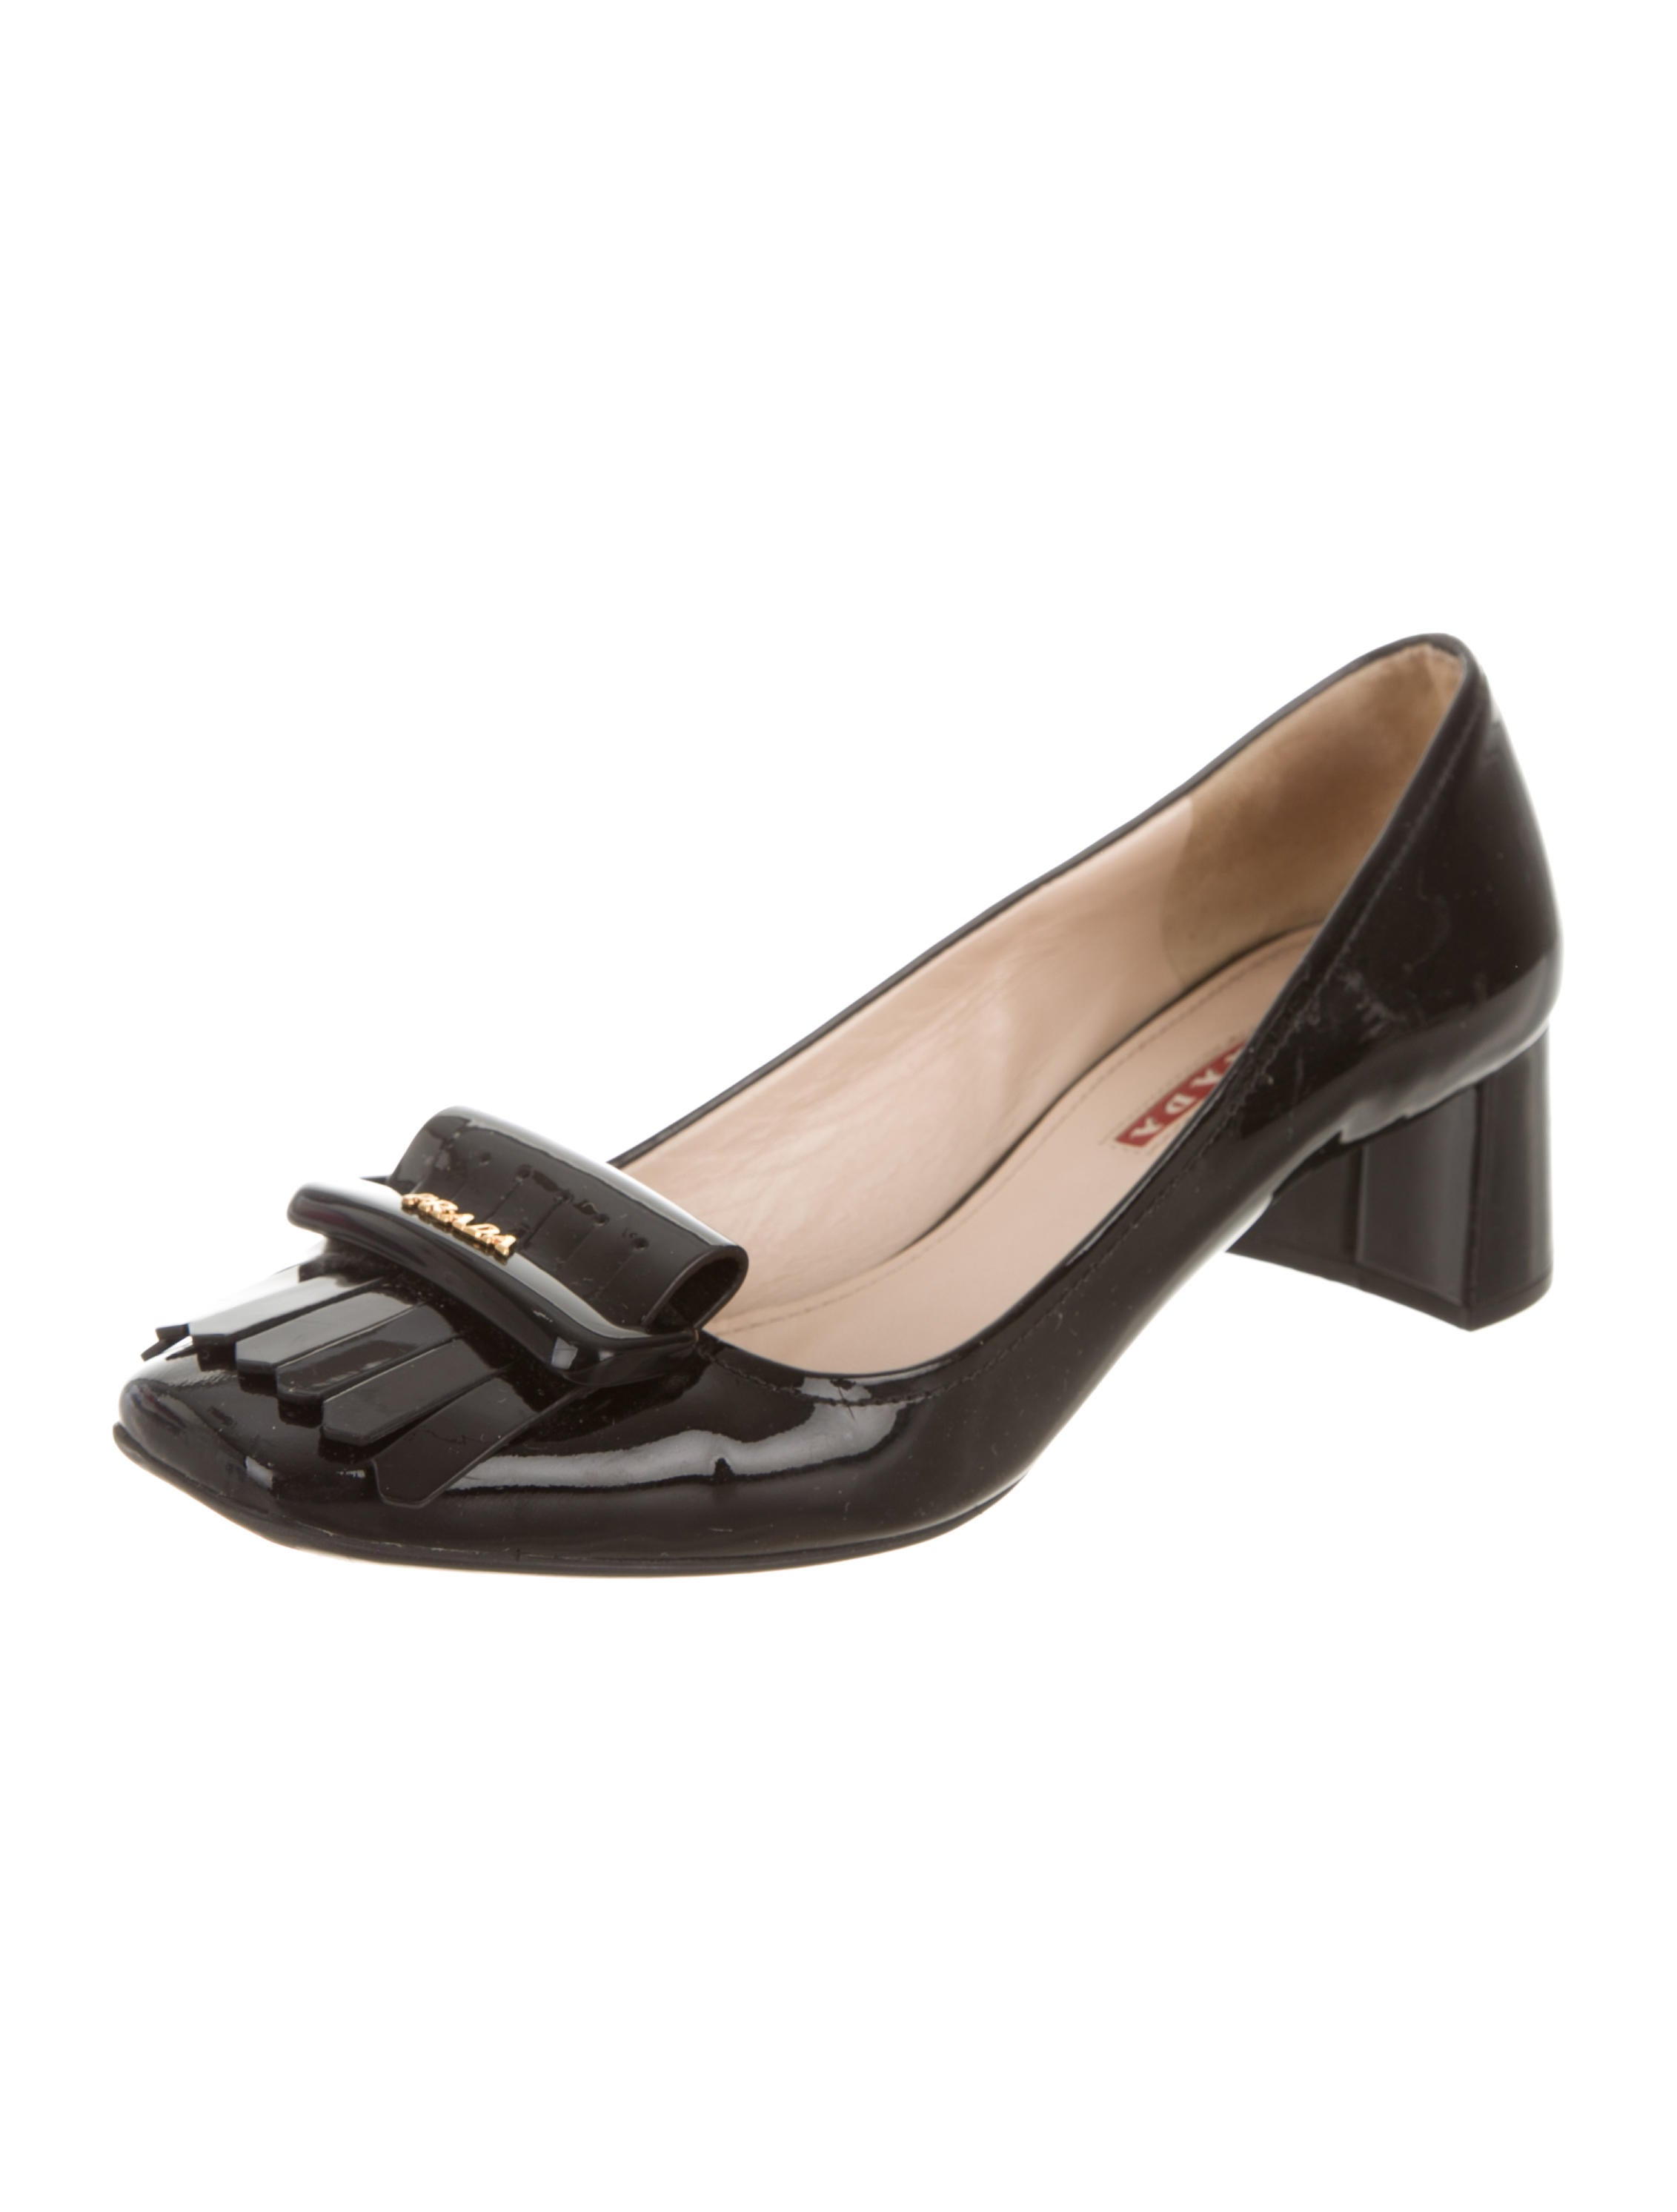 buy authentic online sale wholesale price Prada Patent Leather Kiltie Sandals w/ Tags pay with visa for sale clearance get authentic 1NQCTqI9